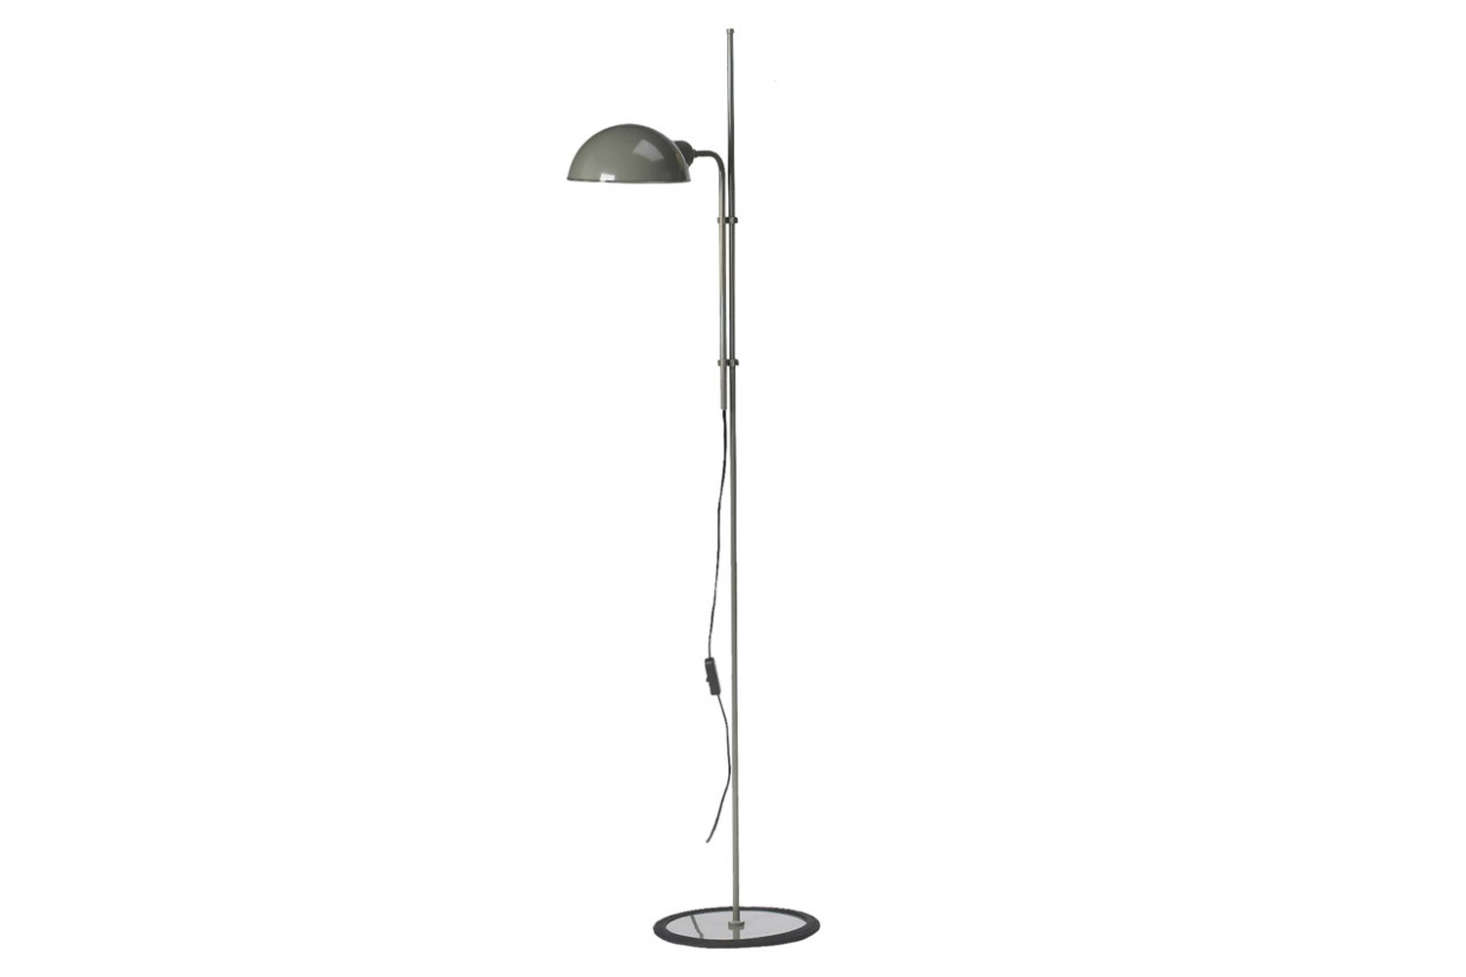 The Marset Funiculi Floor Lamp, shown in grey, is a design classic from 1979 with a funicular up-and-down movement designed by Lluís Porqueras; $245 at Finnish Design Shop.